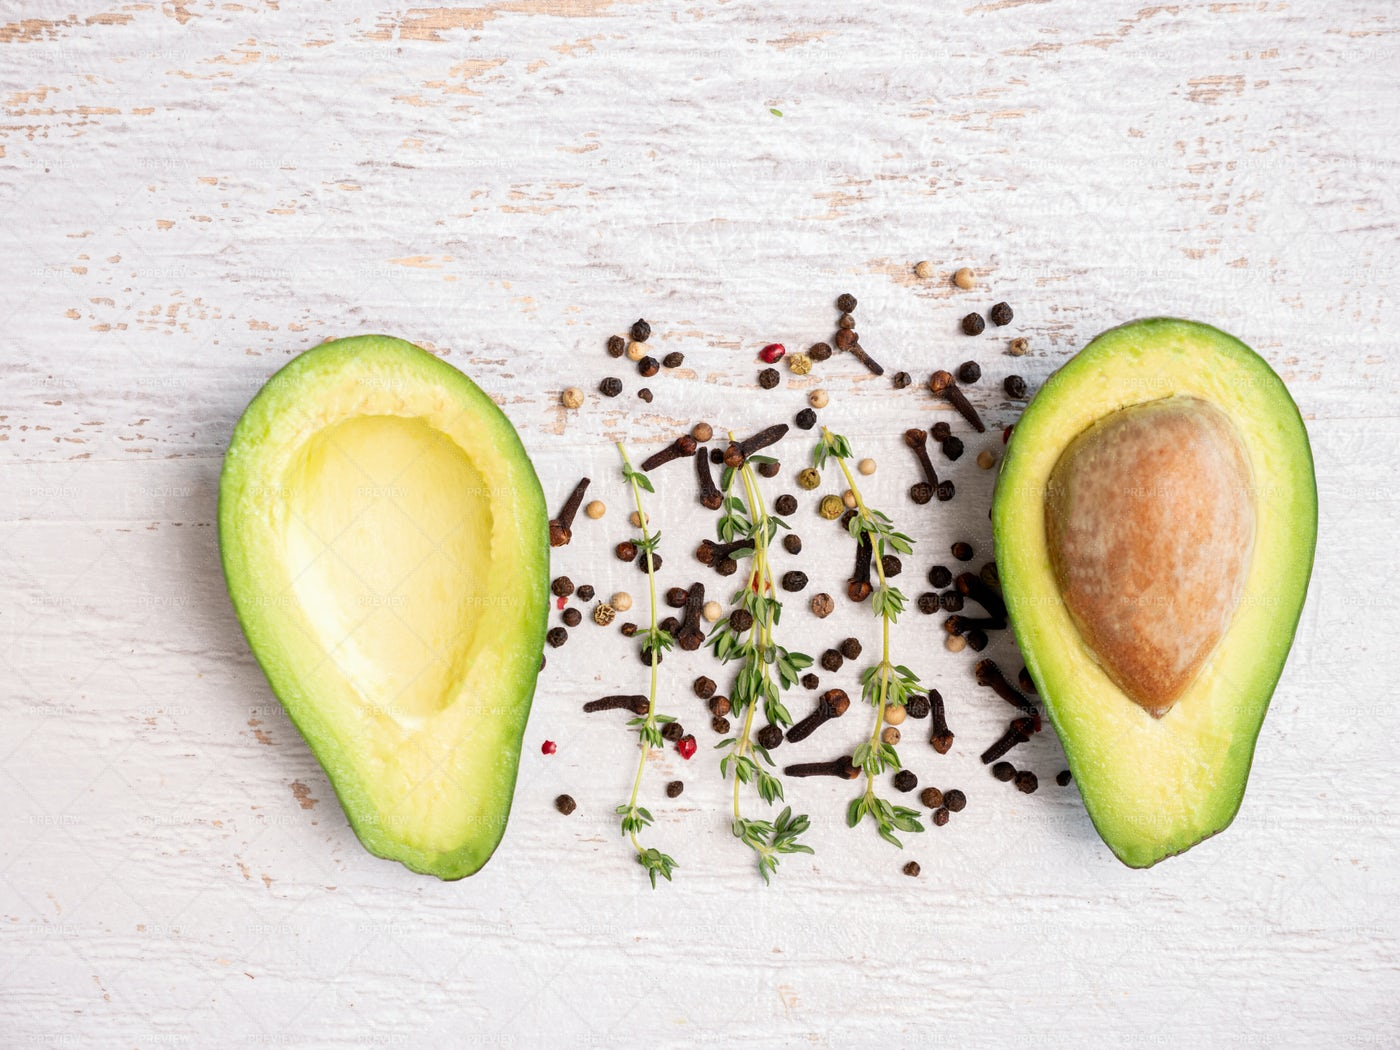 Avocado Cut In Half And Seeds: Stock Photos